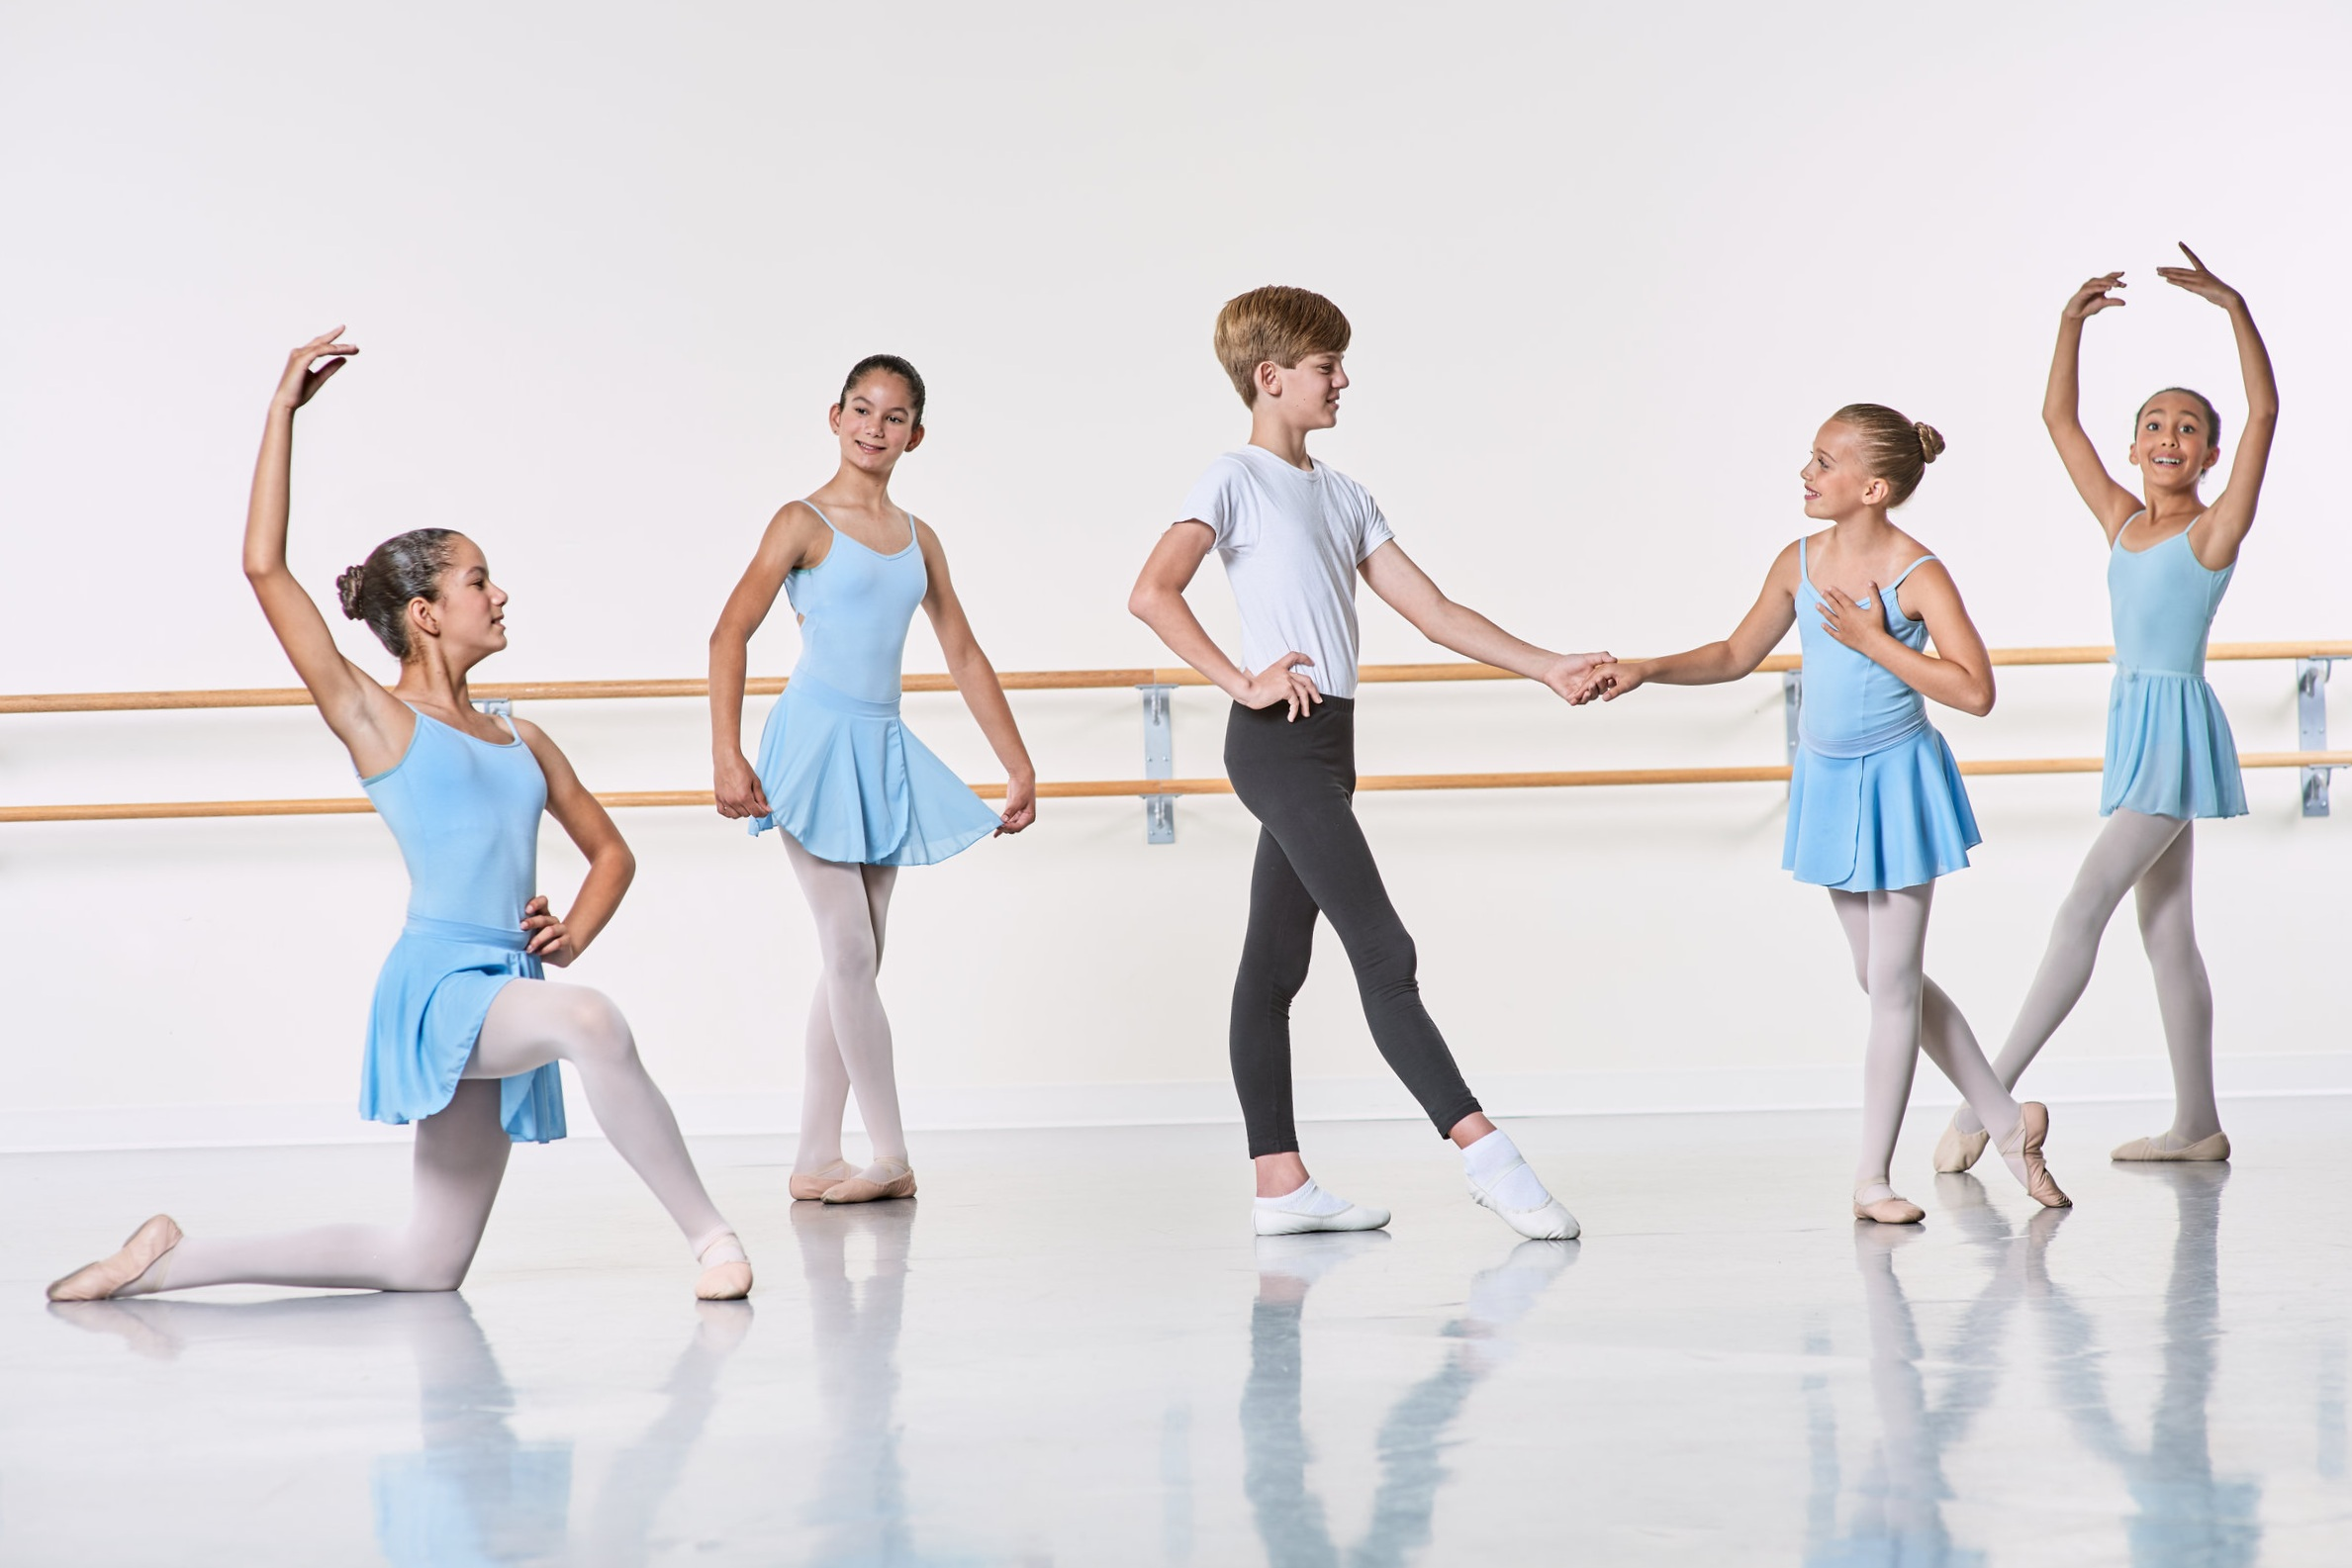 Youth Ballet IV - One year of Youth Ballet III-or-Equivalent by Evaluation